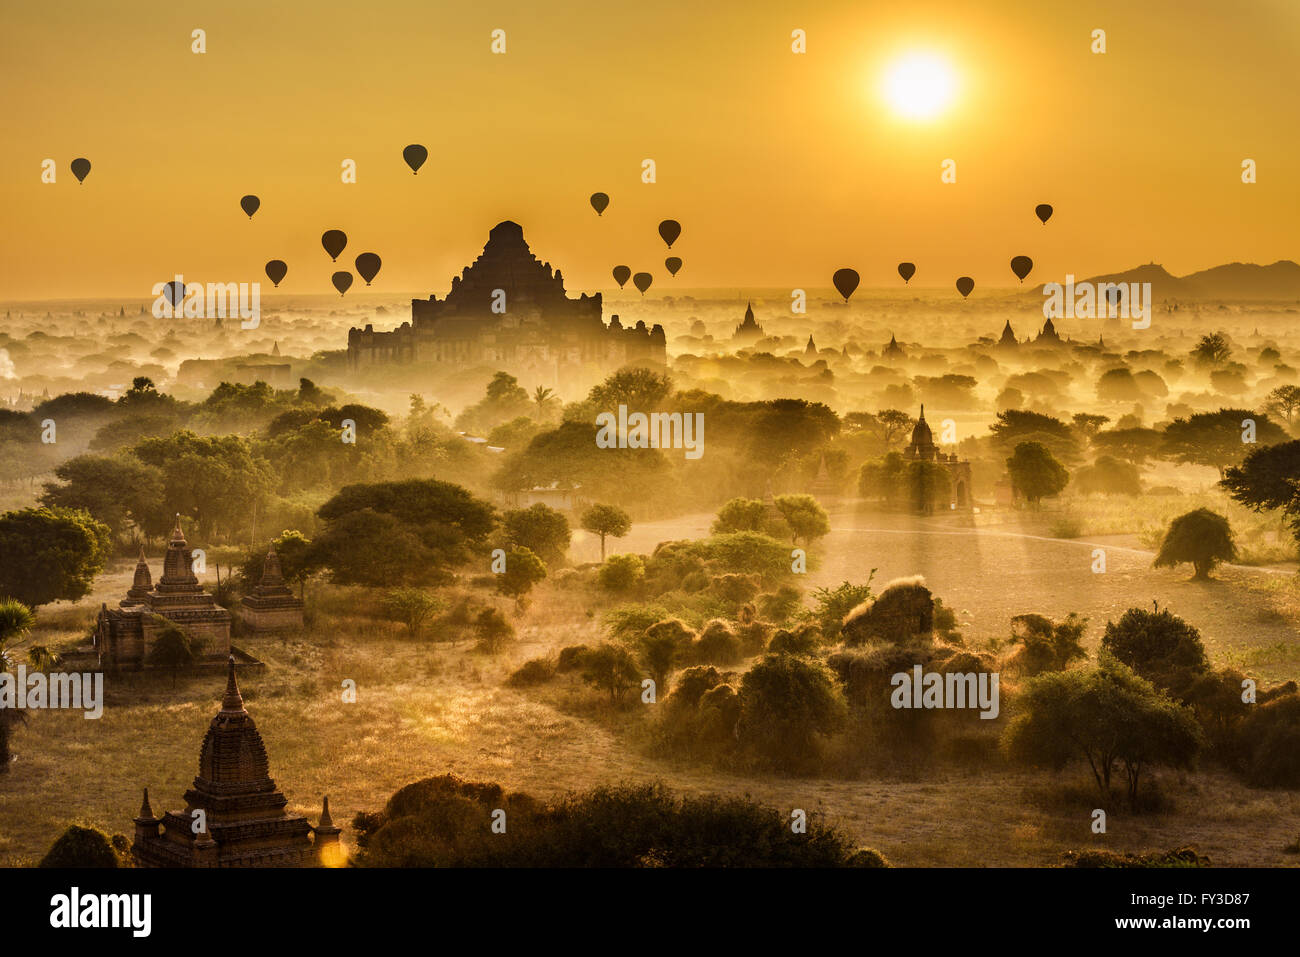 Scenic sunrise with many hot air balloons above Bagan in Myanmar. Bagan is an ancient city with thousands of historic - Stock Image